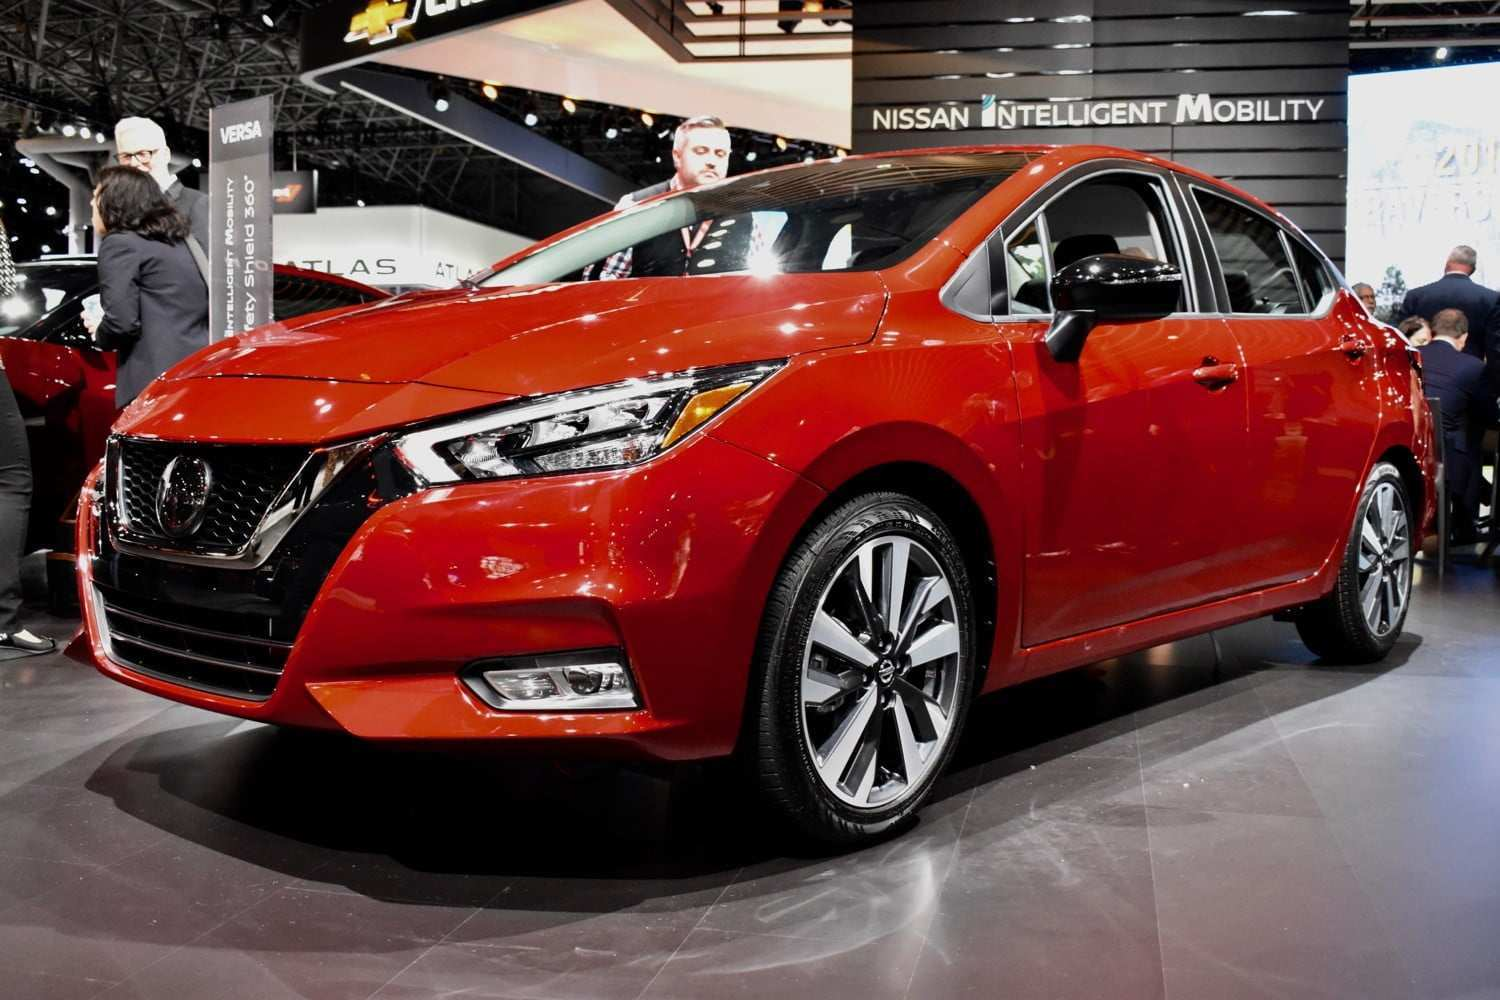 42 All New Nissan Hatchback 2020 History